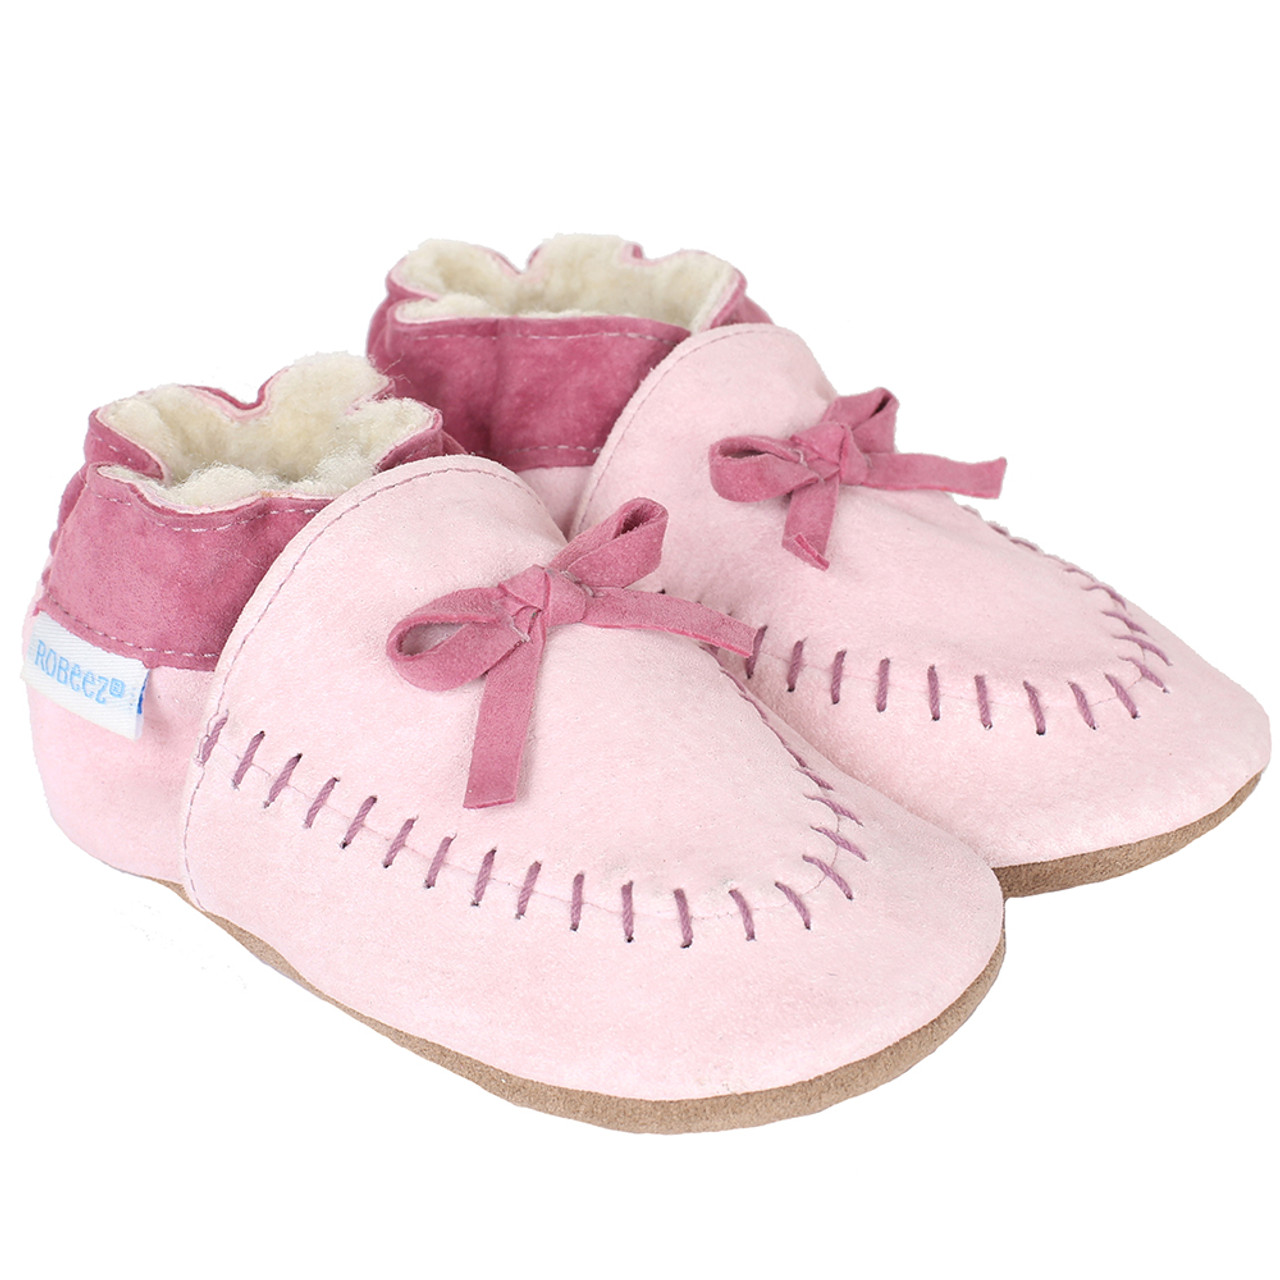 631cd90192336 Robeez Cozy Moccasins Pink Soft Soles